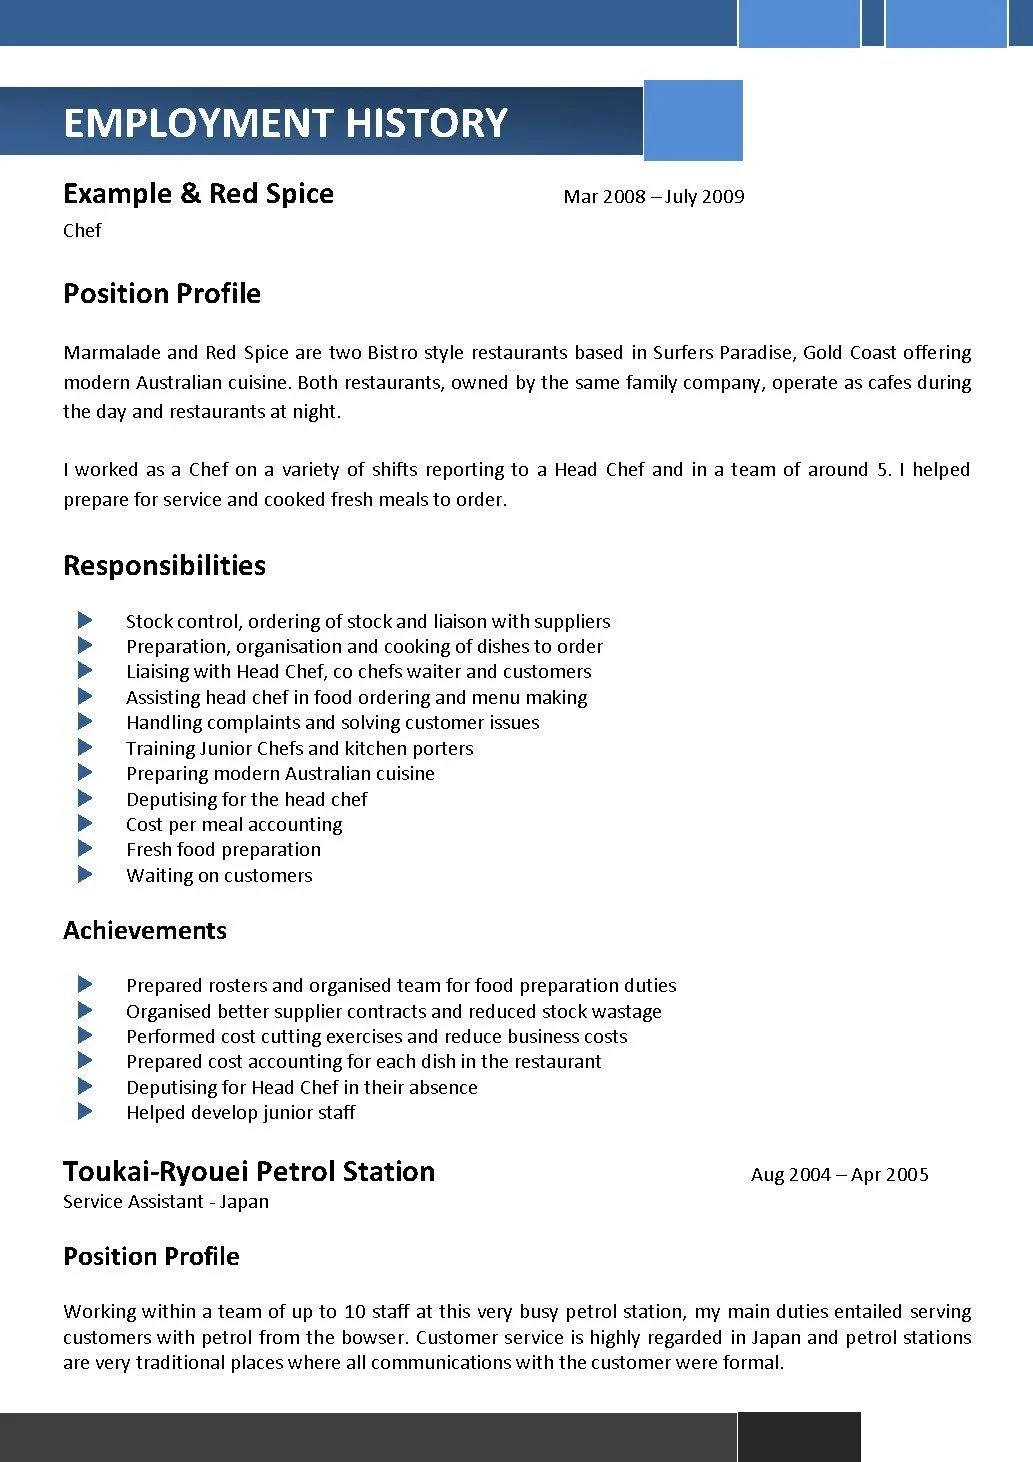 resume format questions curriculum vitae resume format questions 21 sample interview questions resume samples cover we can help professional